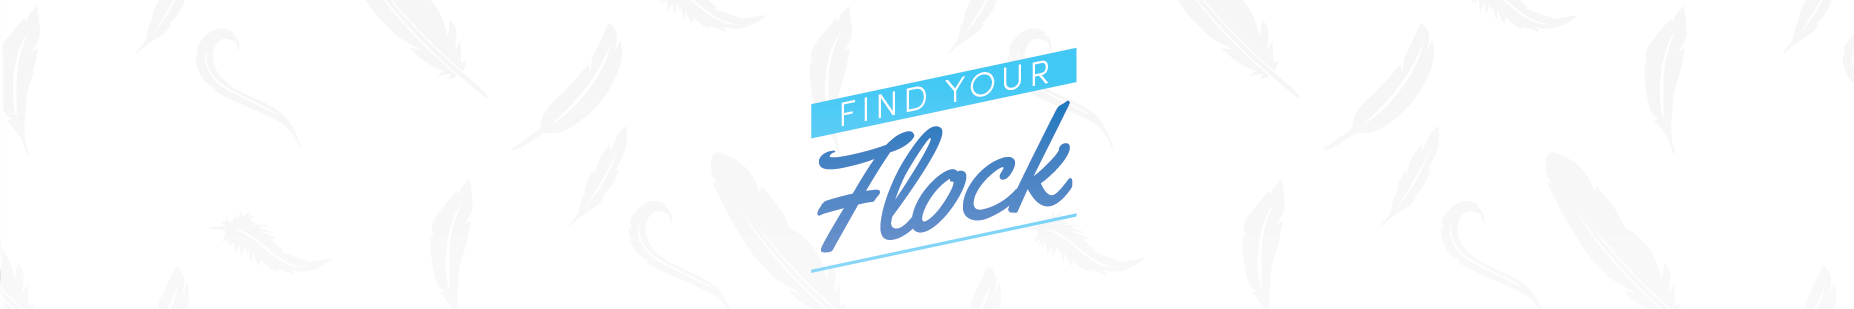 Find your Flock logo picture